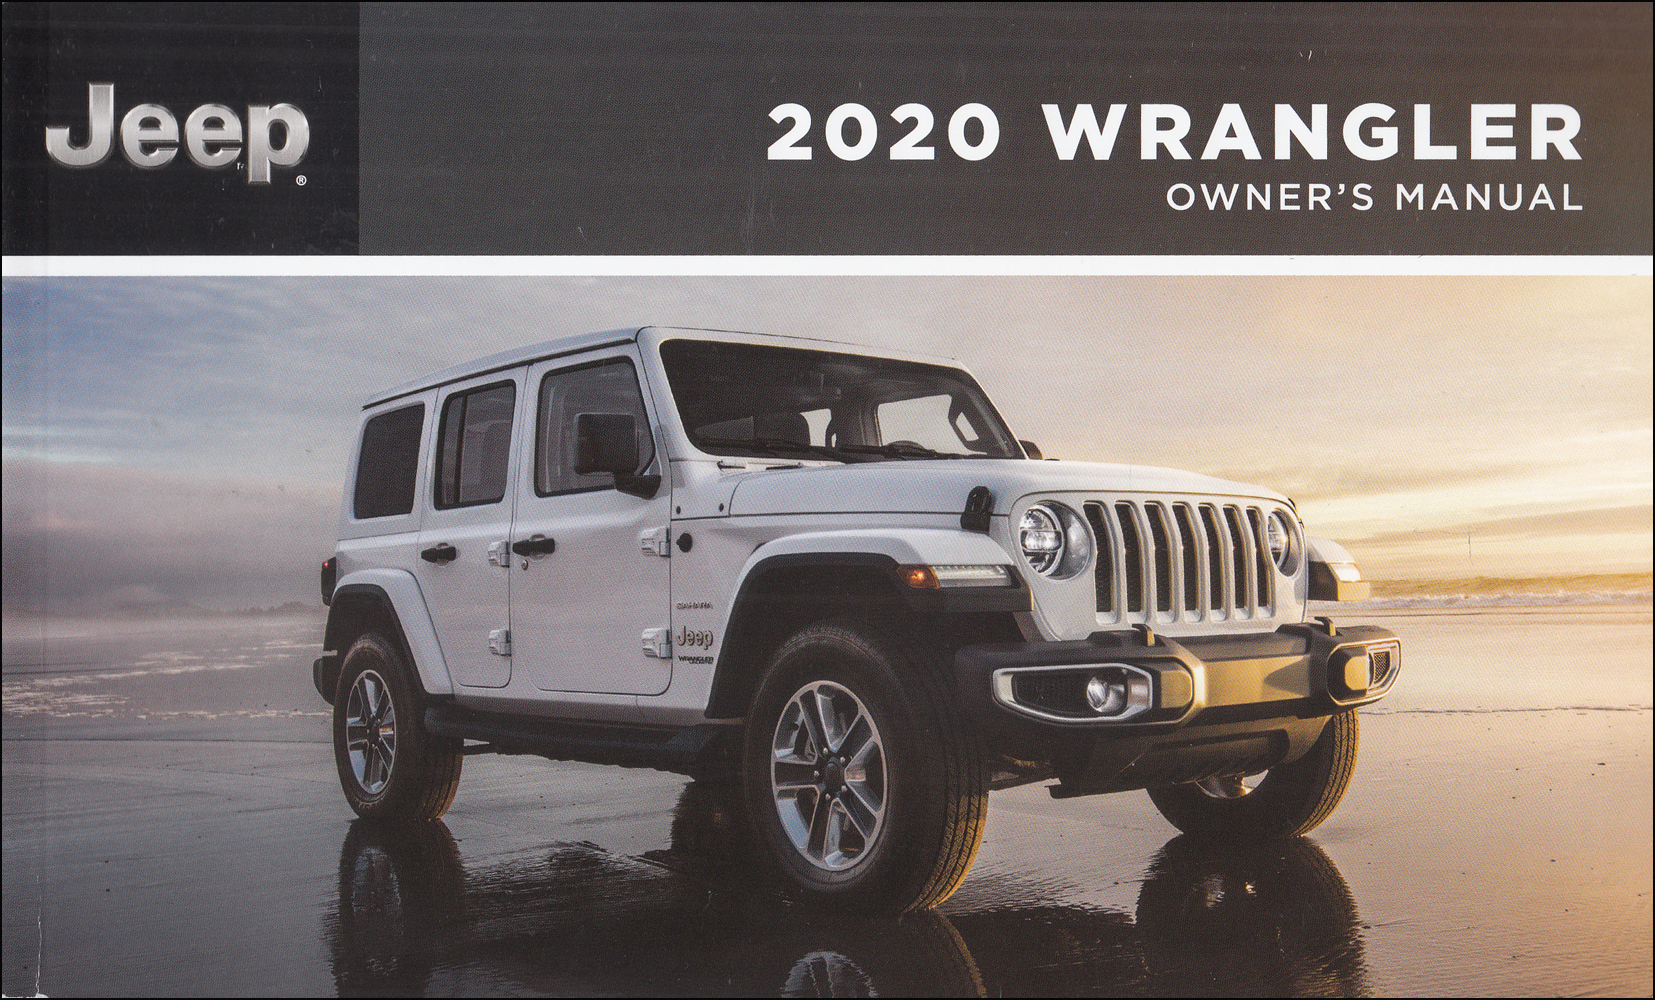 2020 Jeep Wrangler Owner's Manual Original Extended 482-page version